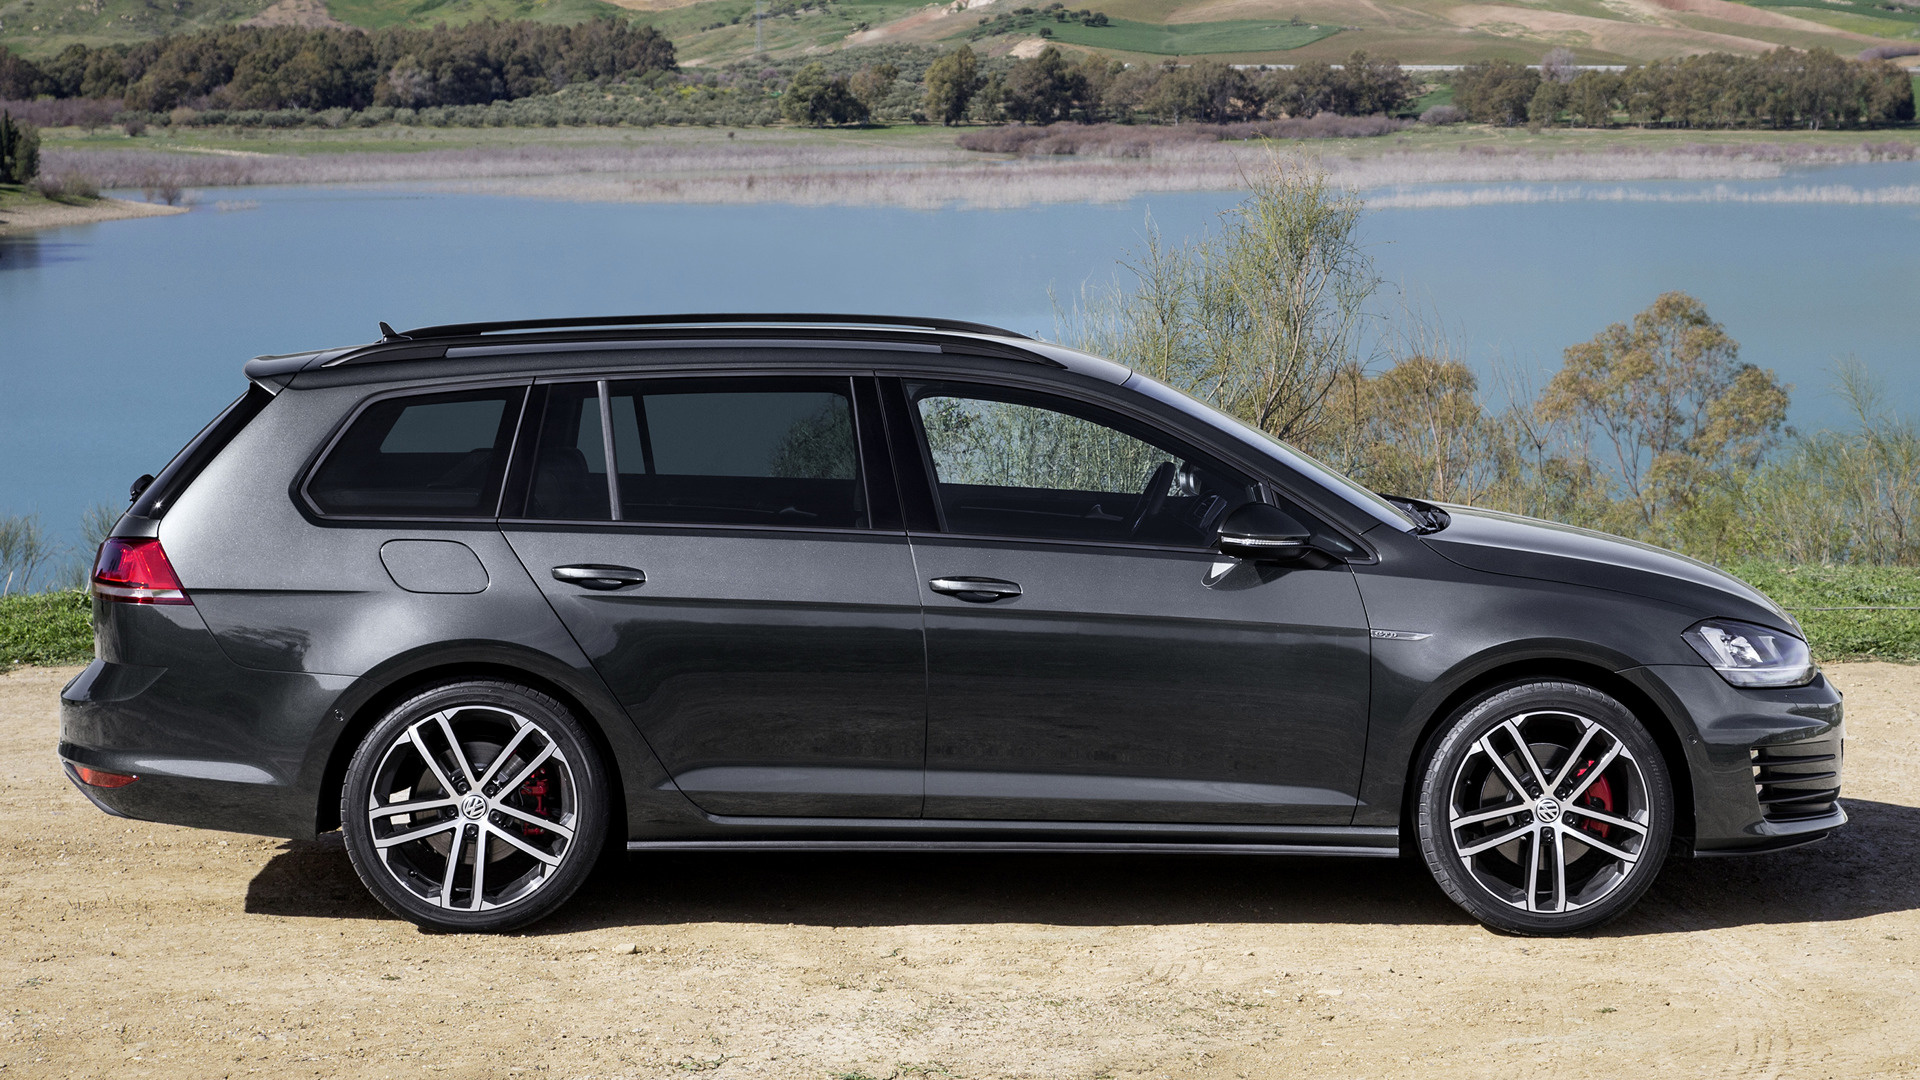 2015 Volkswagen Golf Gtd Variant Wallpapers And Hd